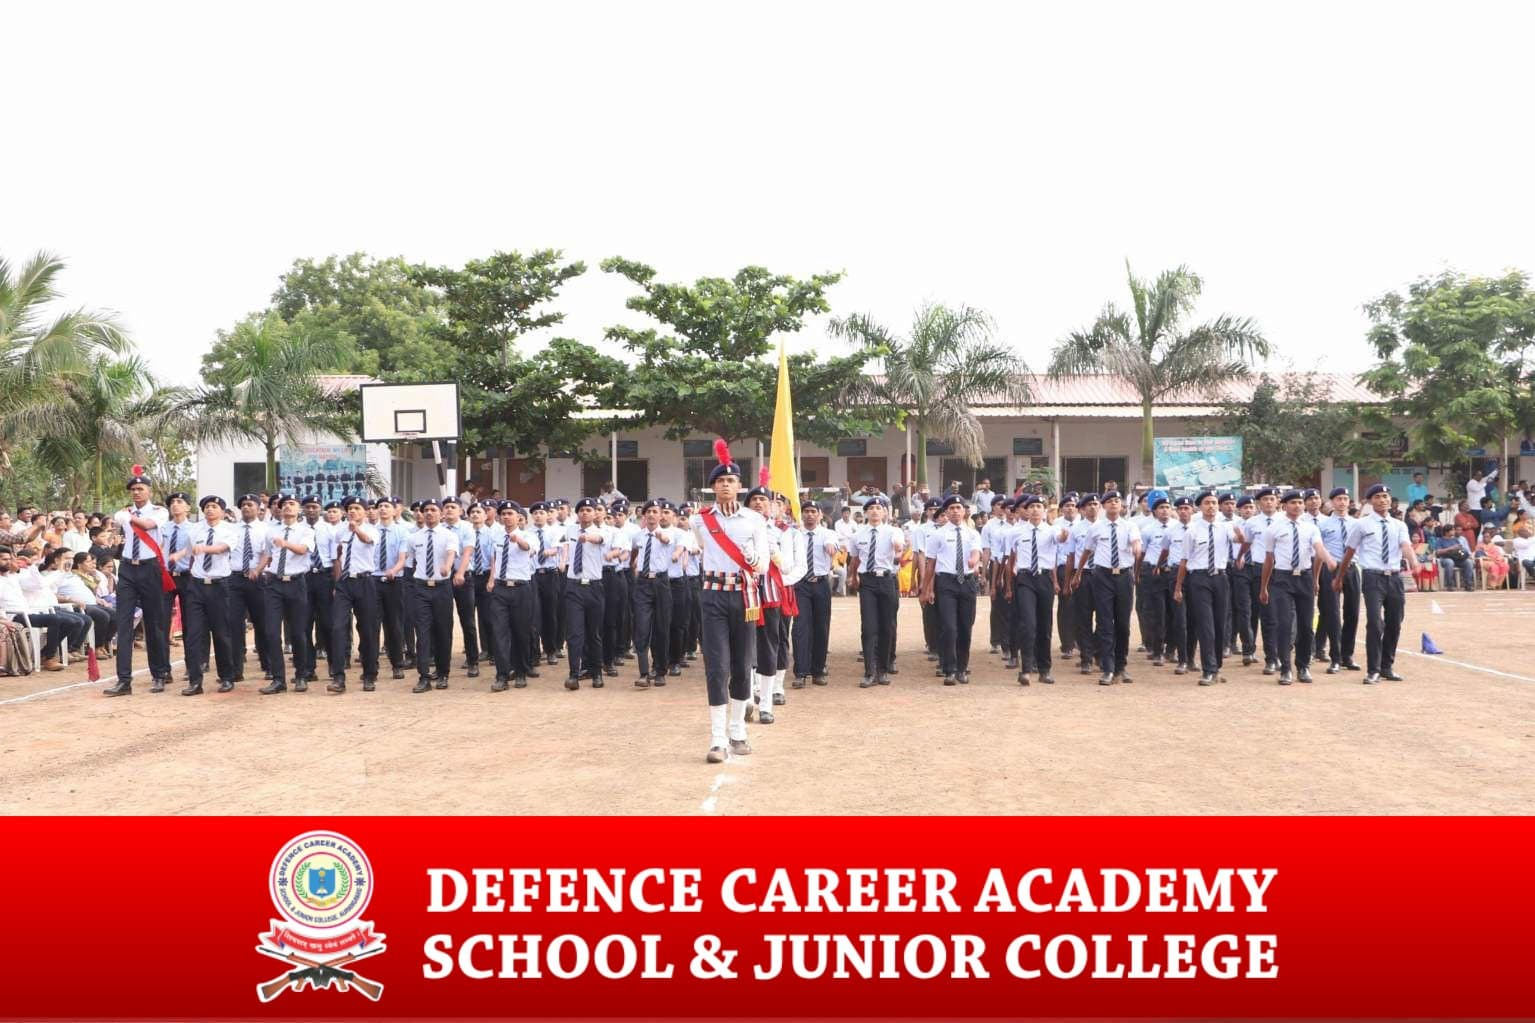 flag-march-defence-career-academy-in-maharashtra-army-public-school-in-aurangabad